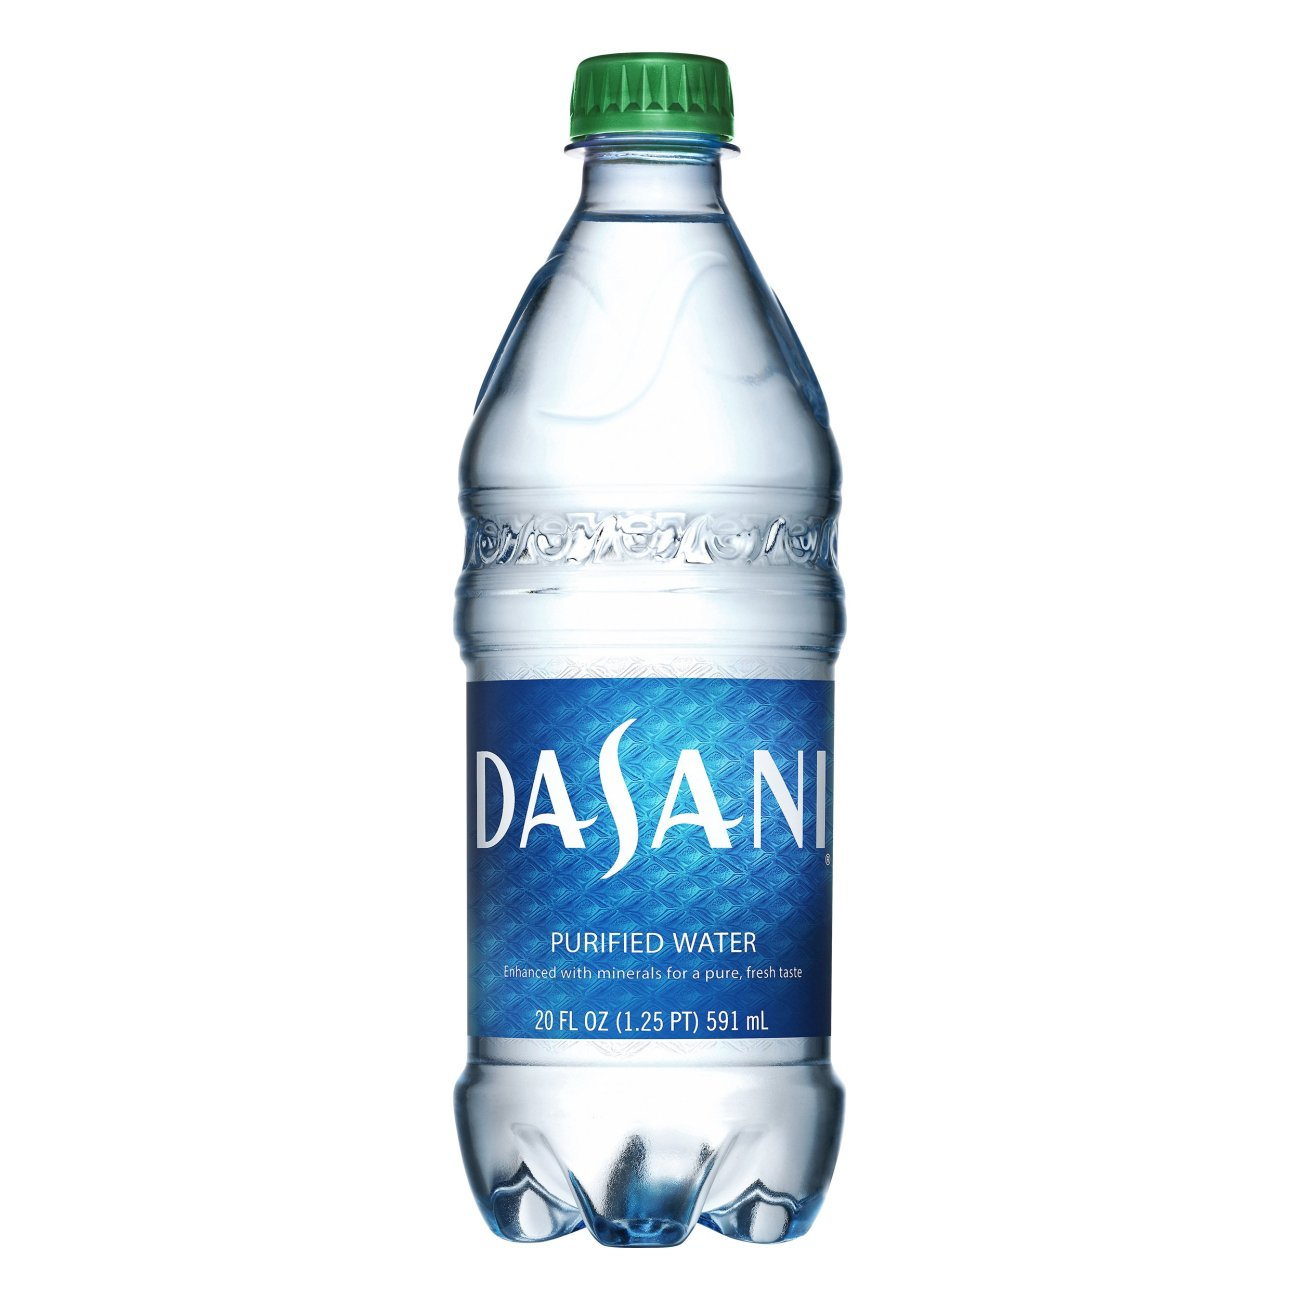 Dasani Purified Water - Shop Water at HEB